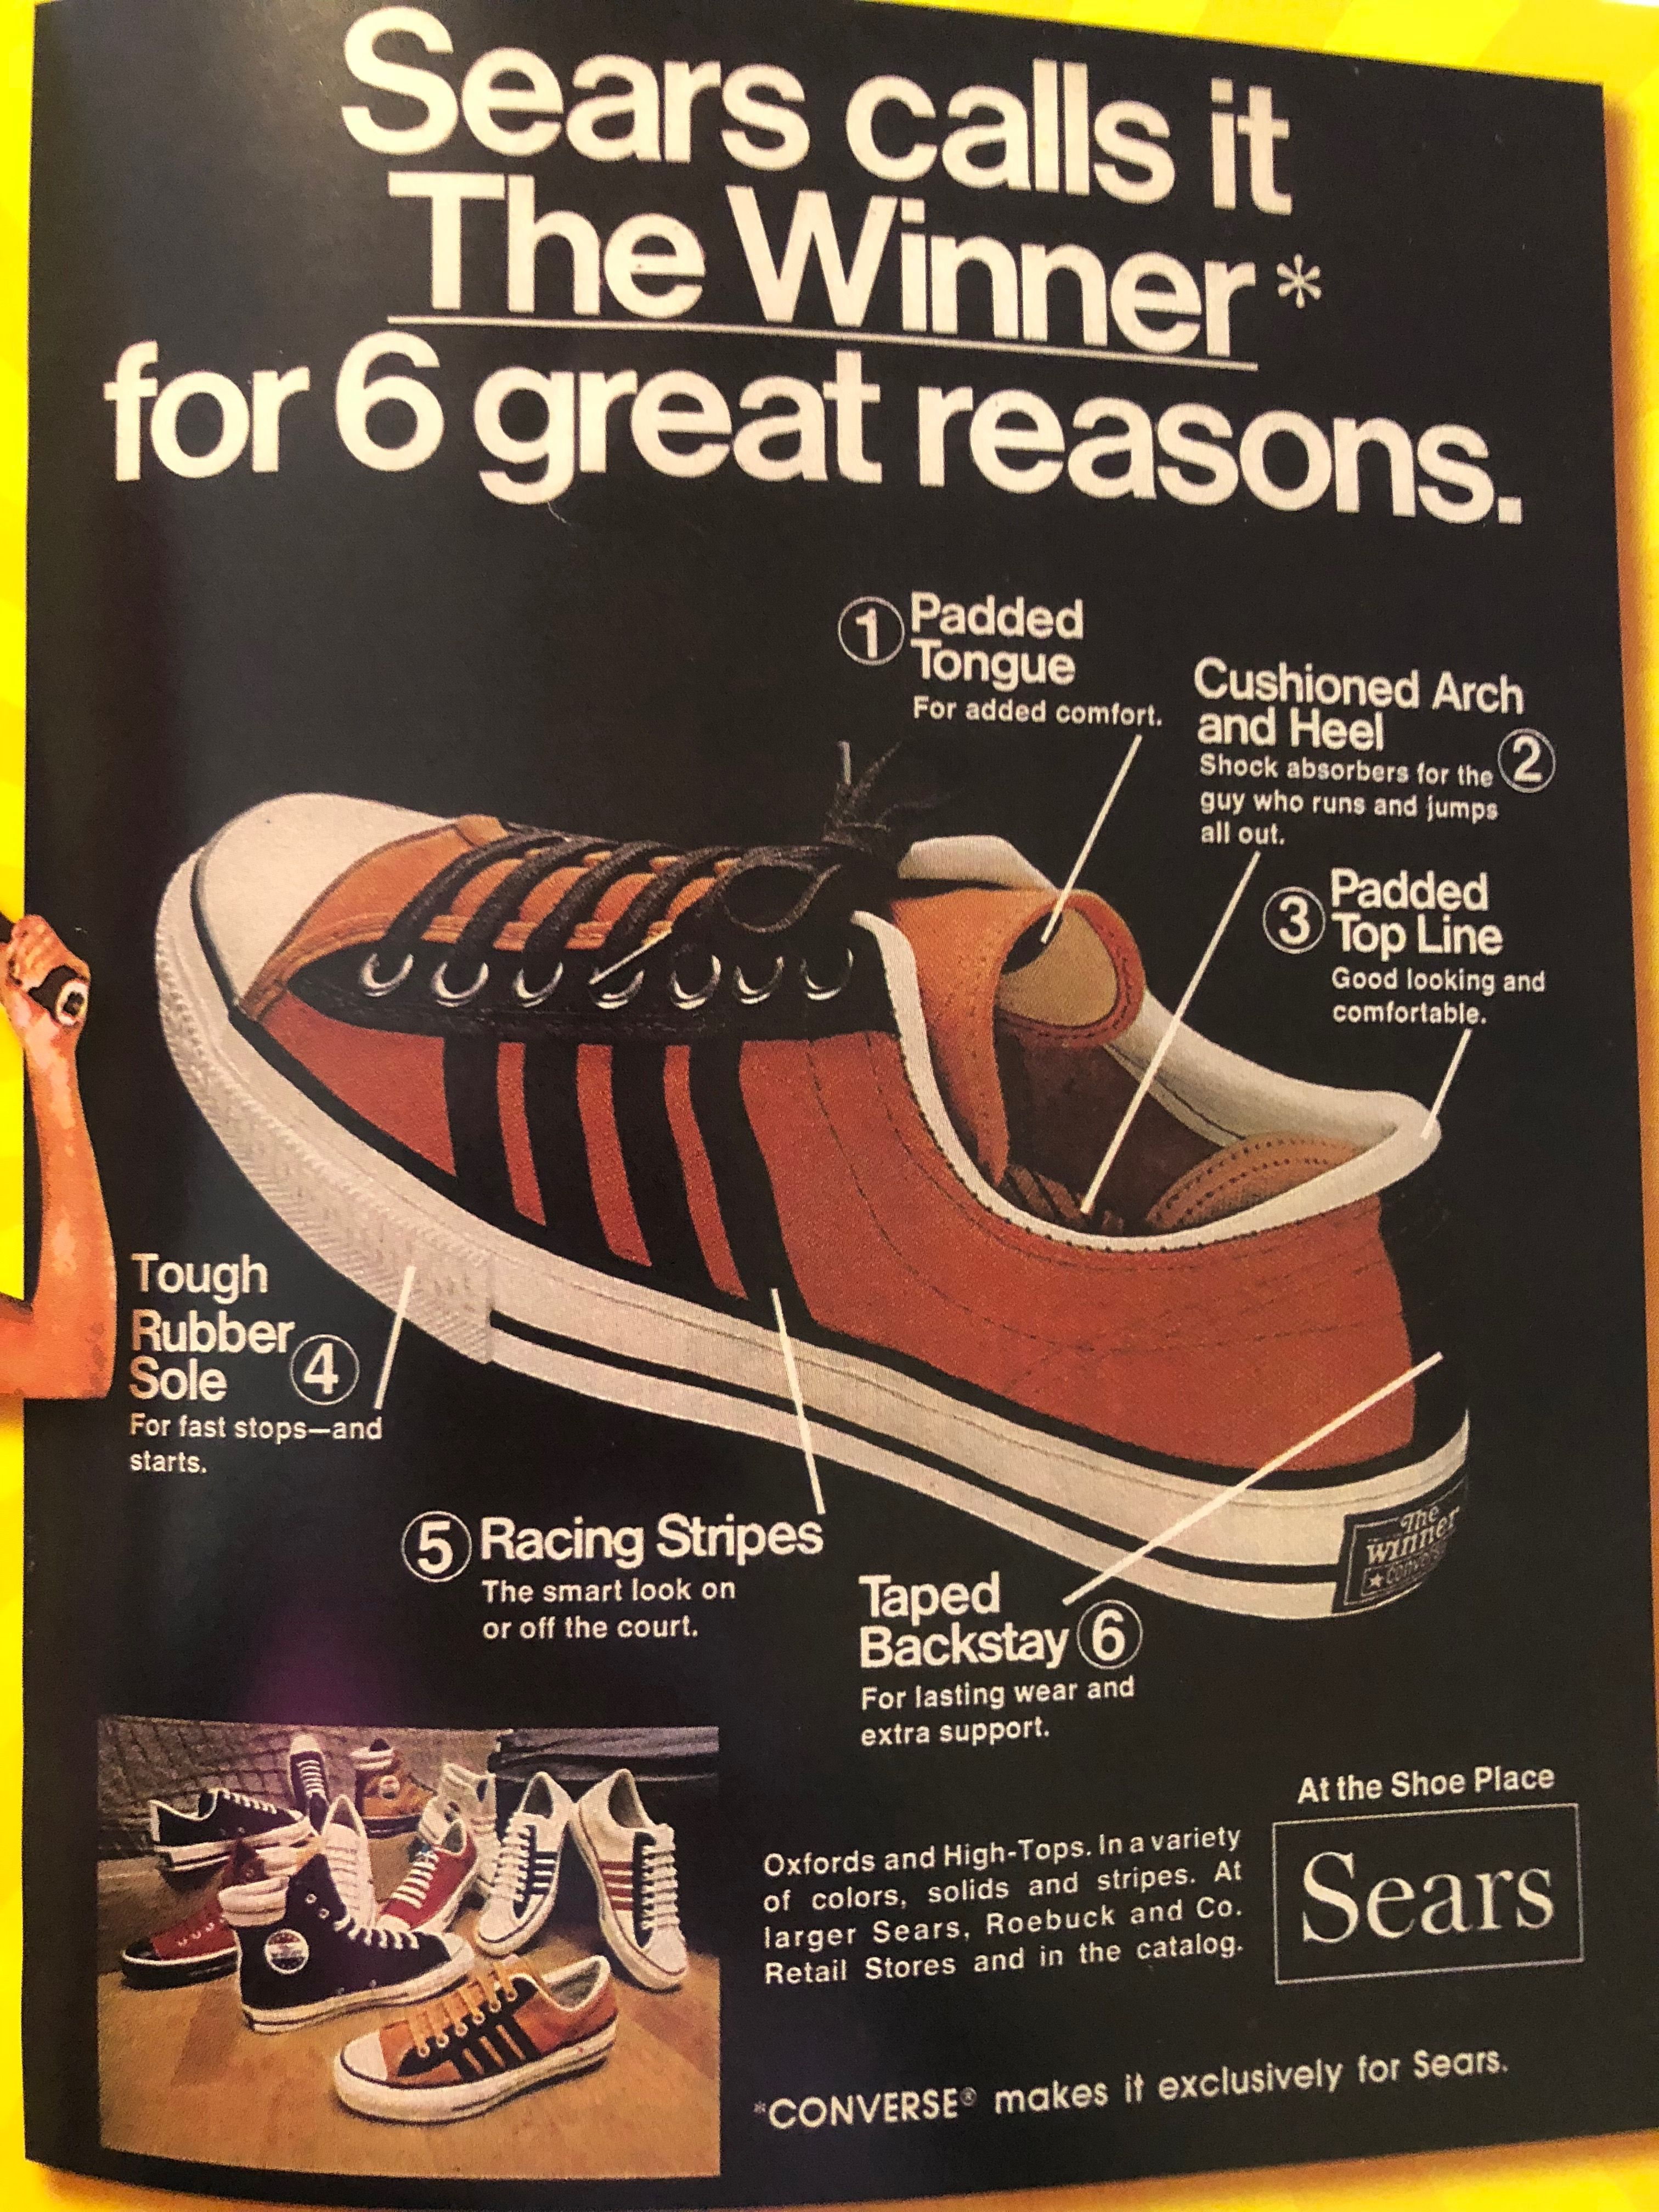 5b768f8a Converse 'the Winner'- made exclusively for Sears. How times have changed!